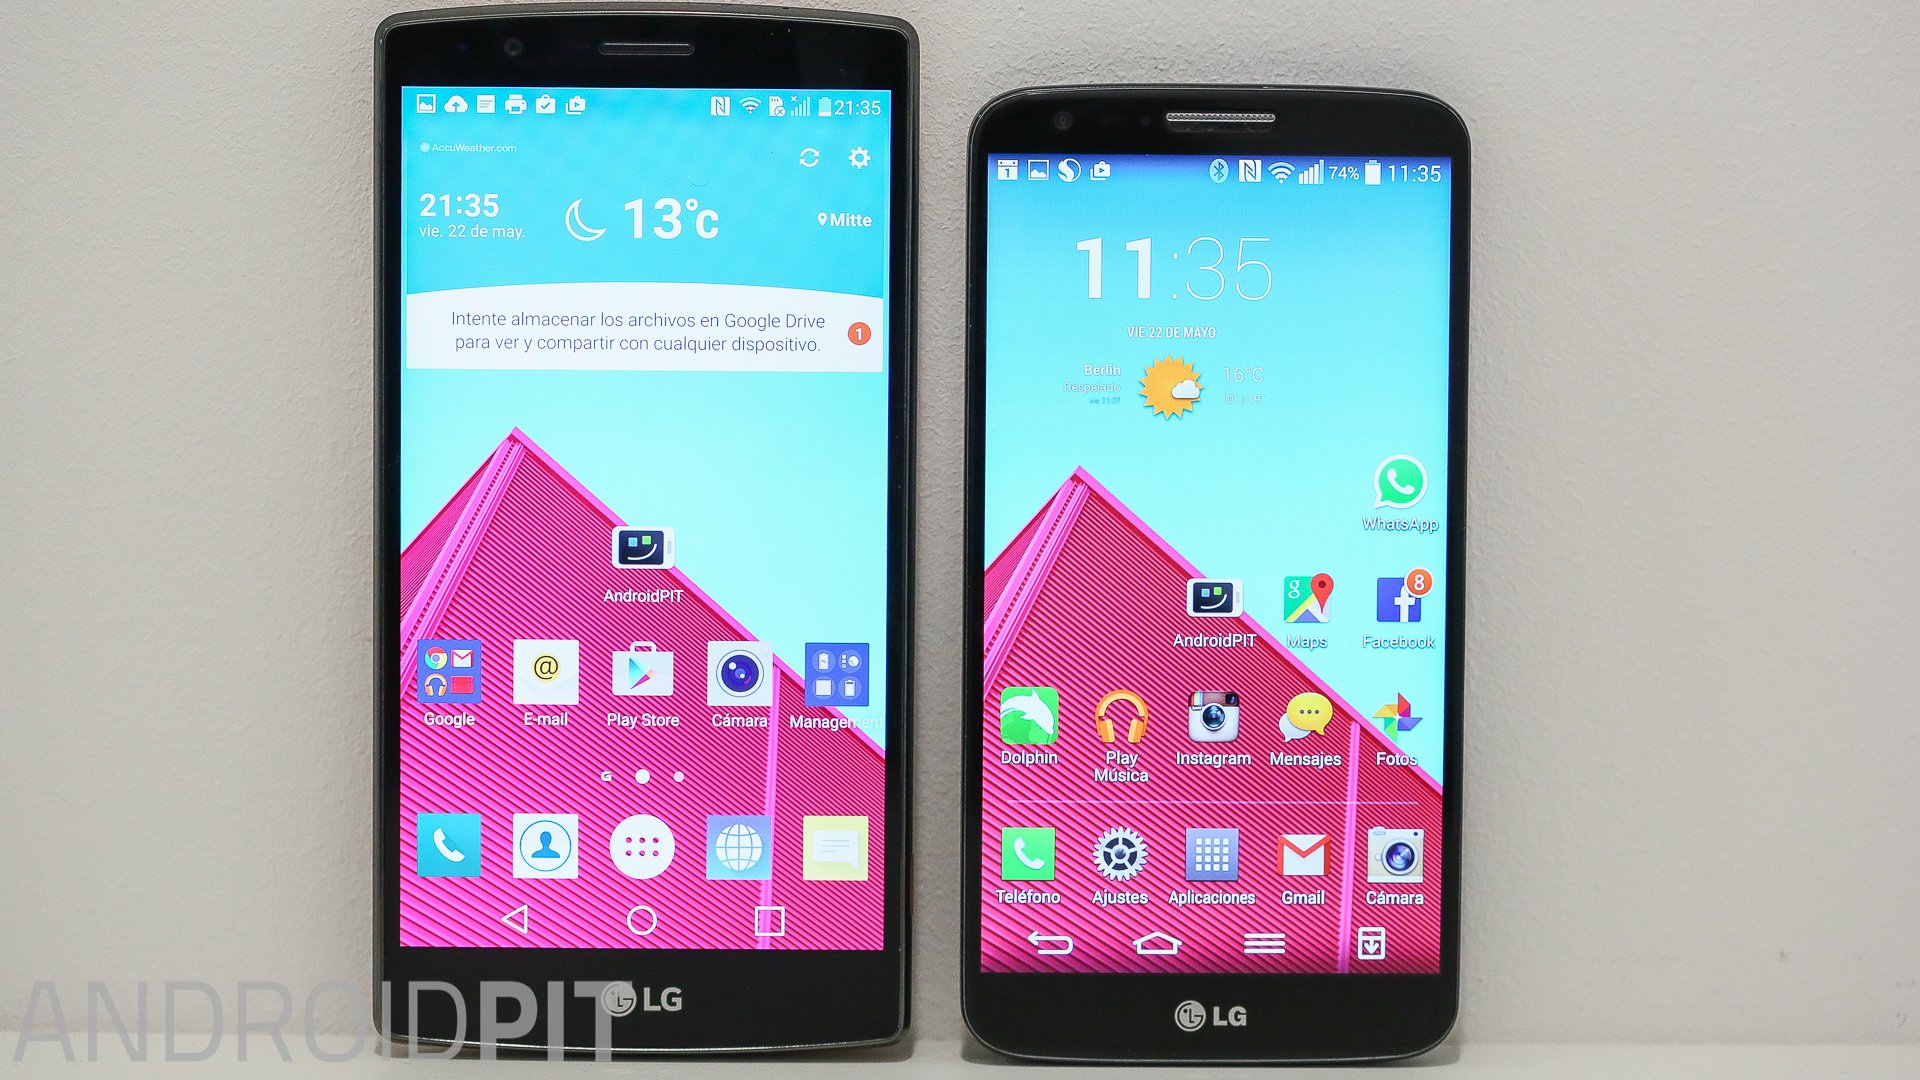 lg g4 vs lg g2 zwei smartphone giganten im vergleich androidpit. Black Bedroom Furniture Sets. Home Design Ideas